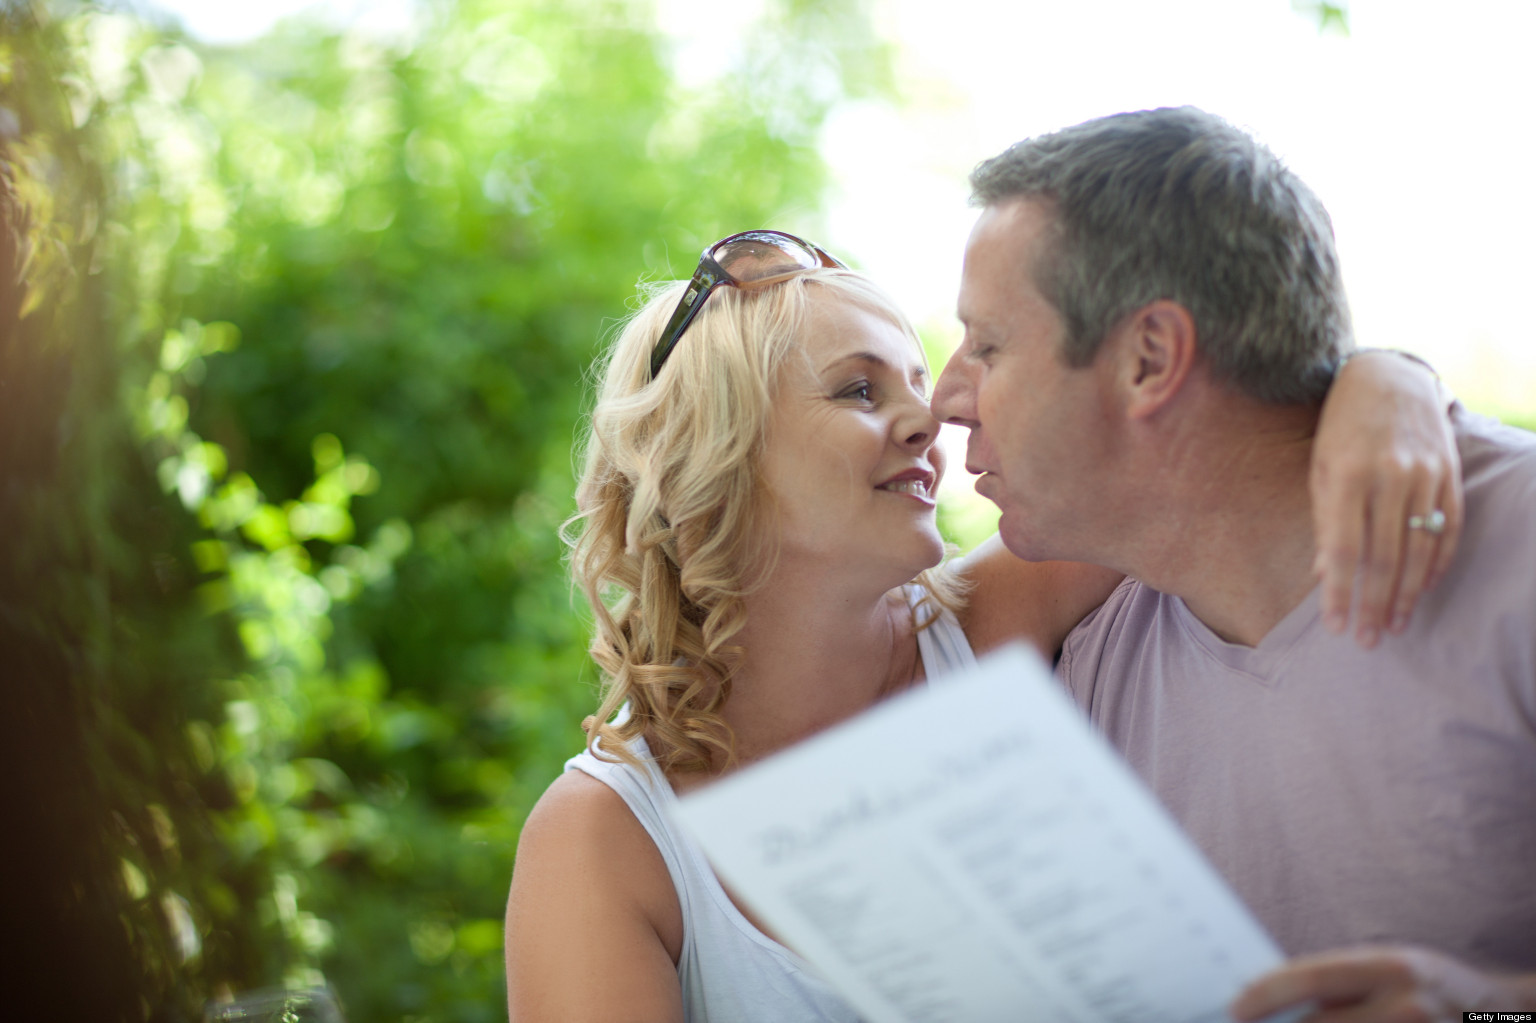 Dating sites for 50 and above